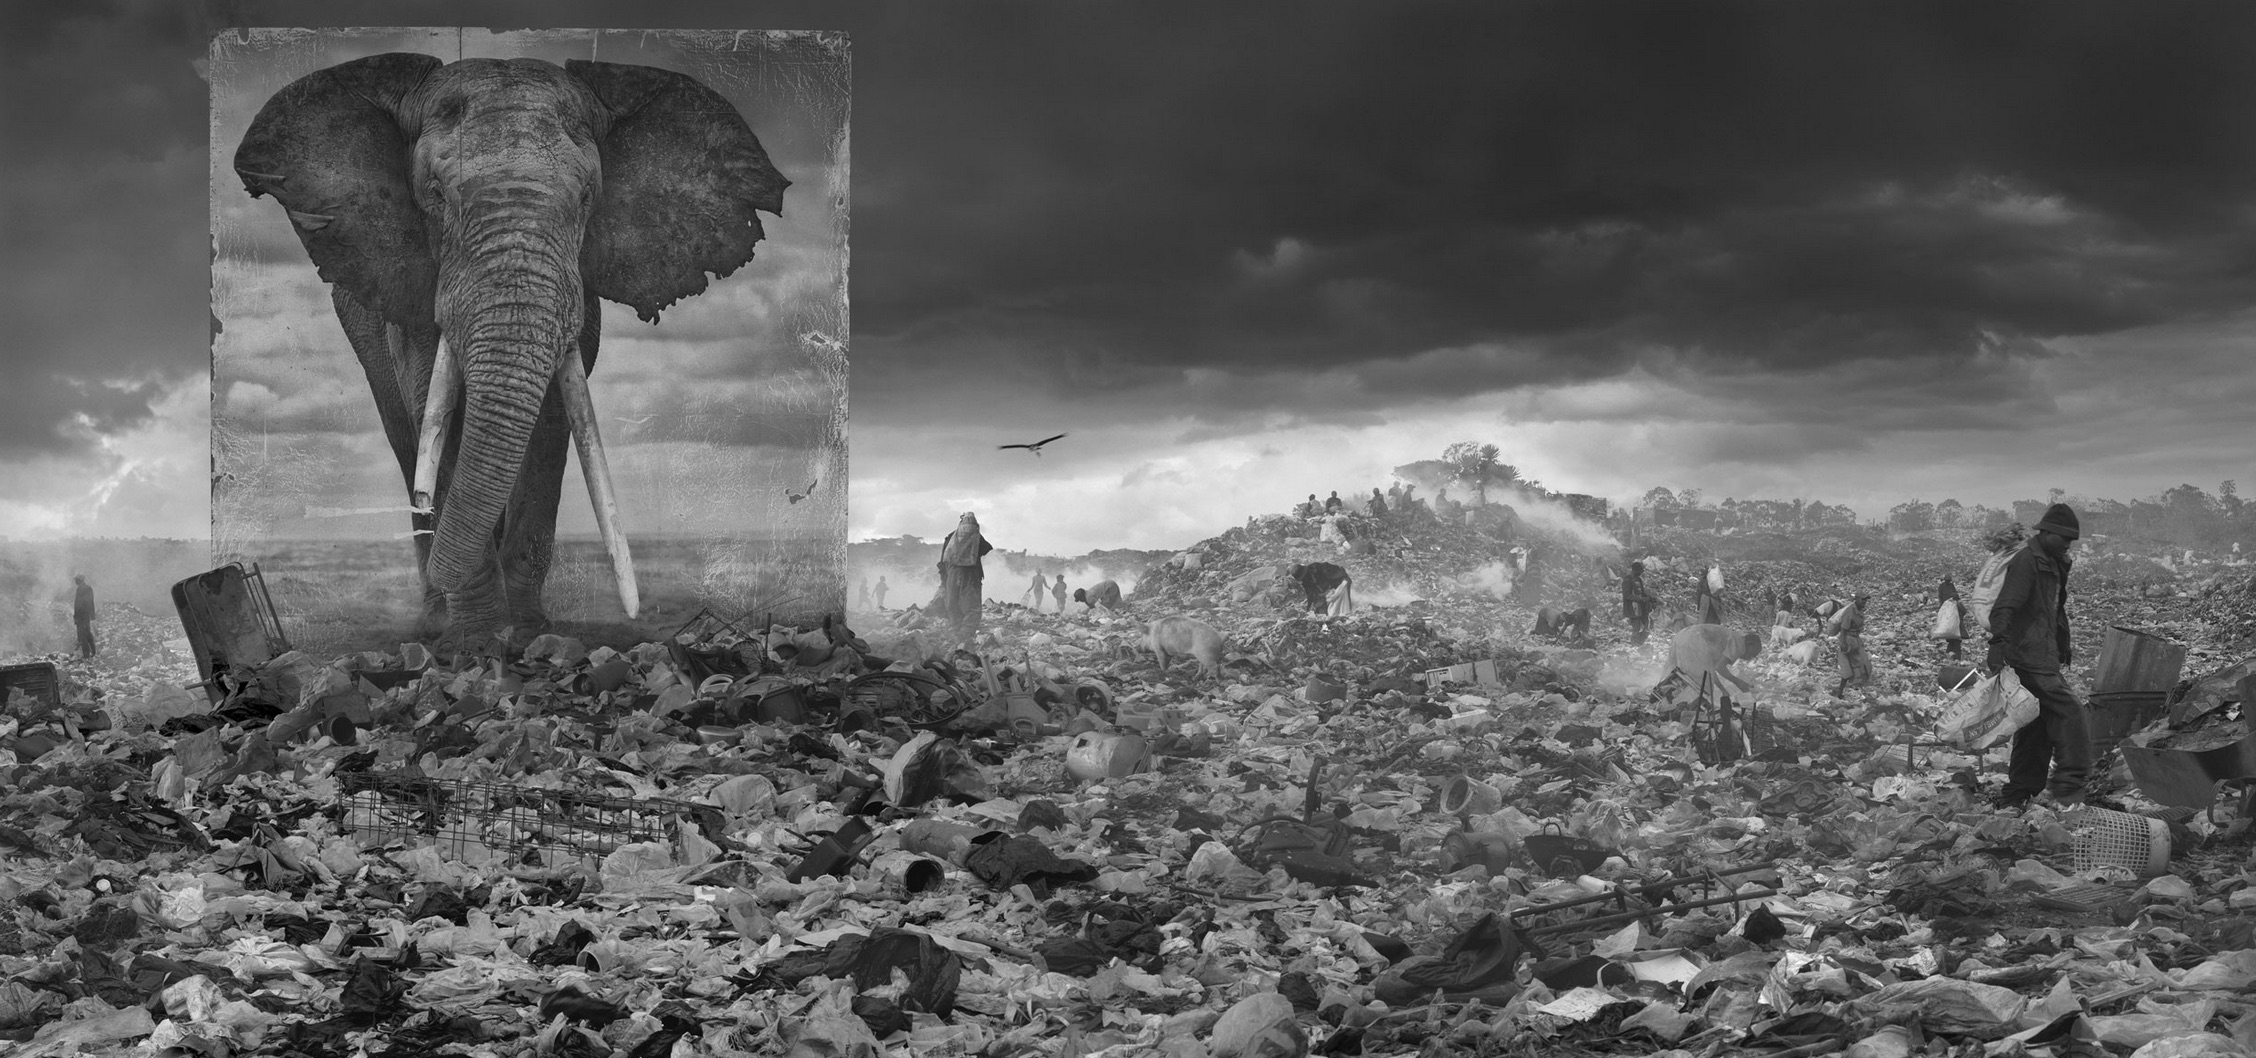 Wasteland with elephant - Nick Brandt